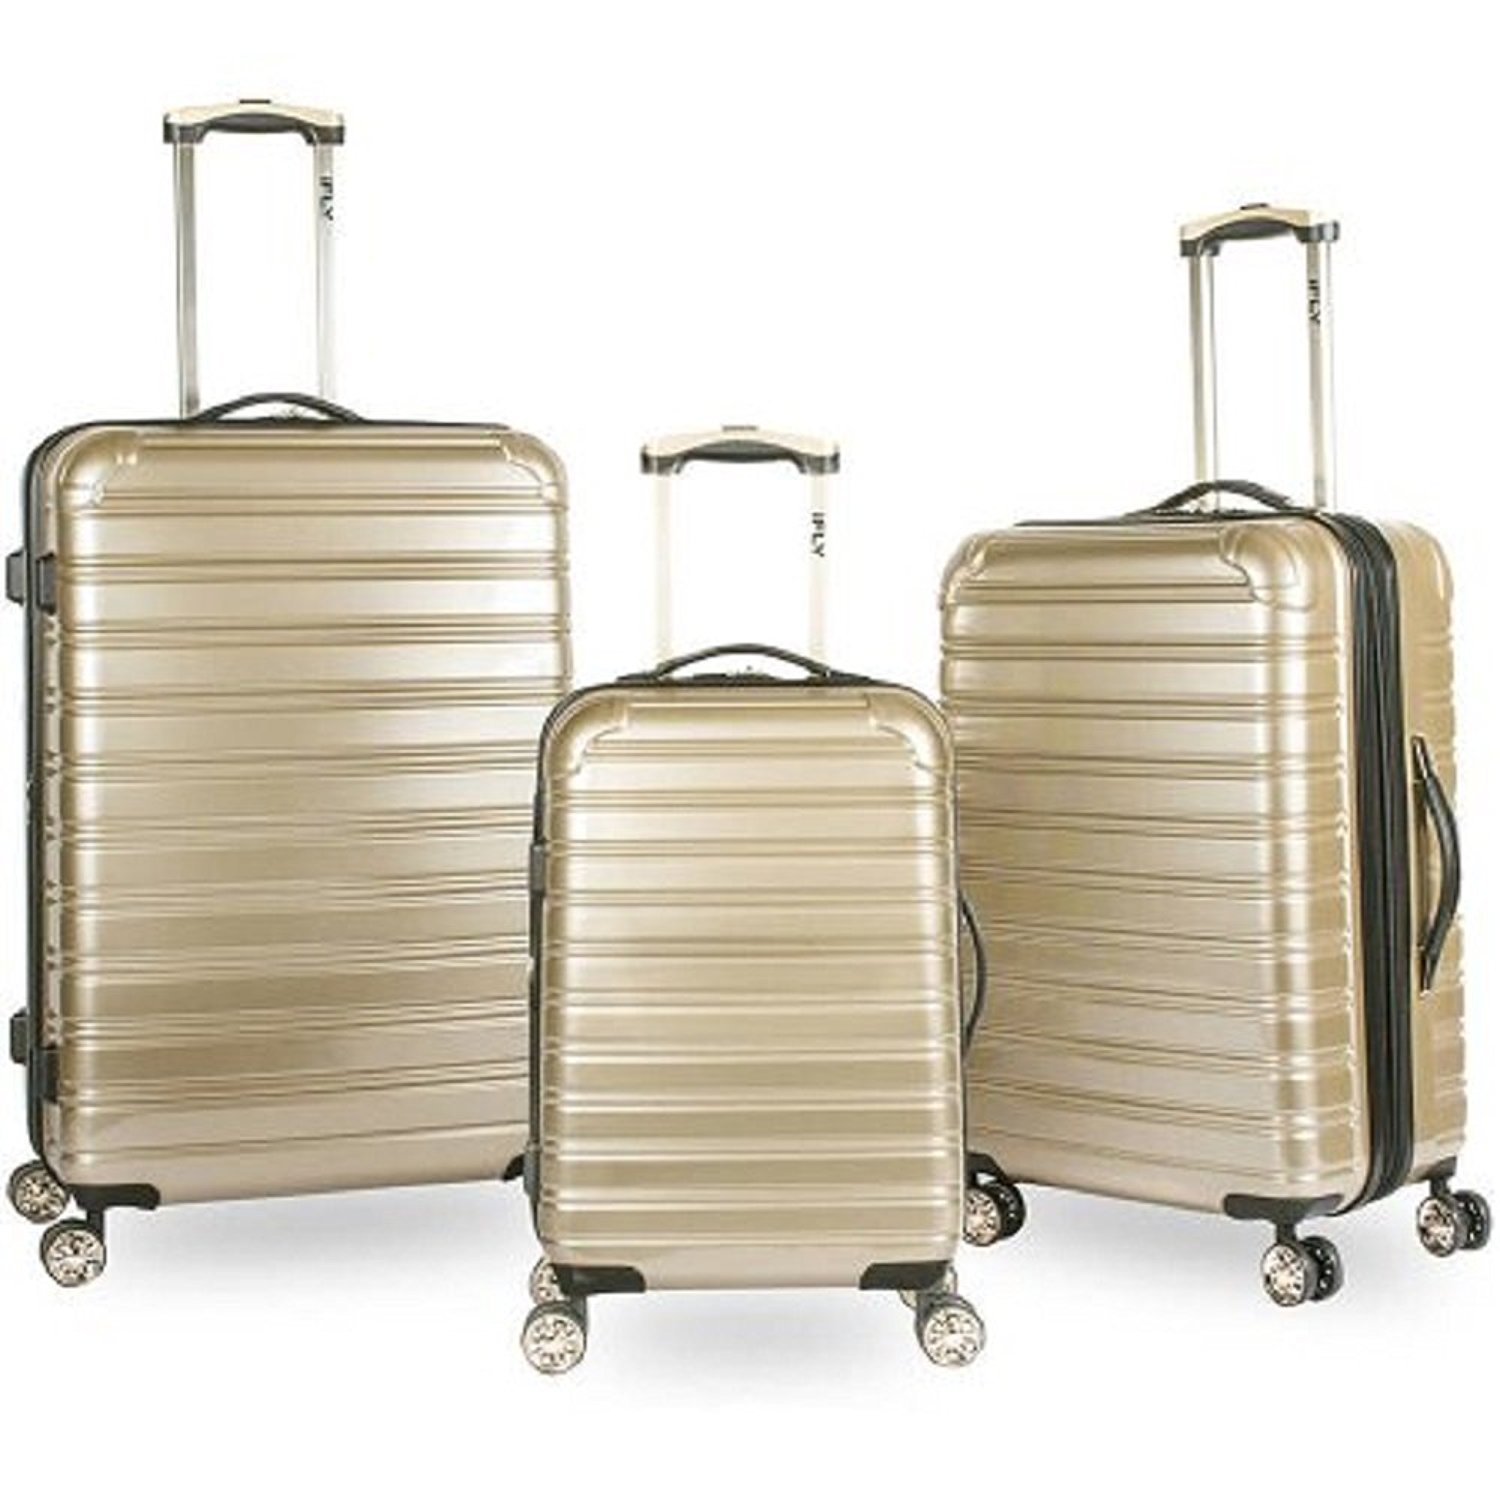 iFLY Hard Sided Fibertech Best Carry On Luggage Bags, Gold, 3 Piece Set